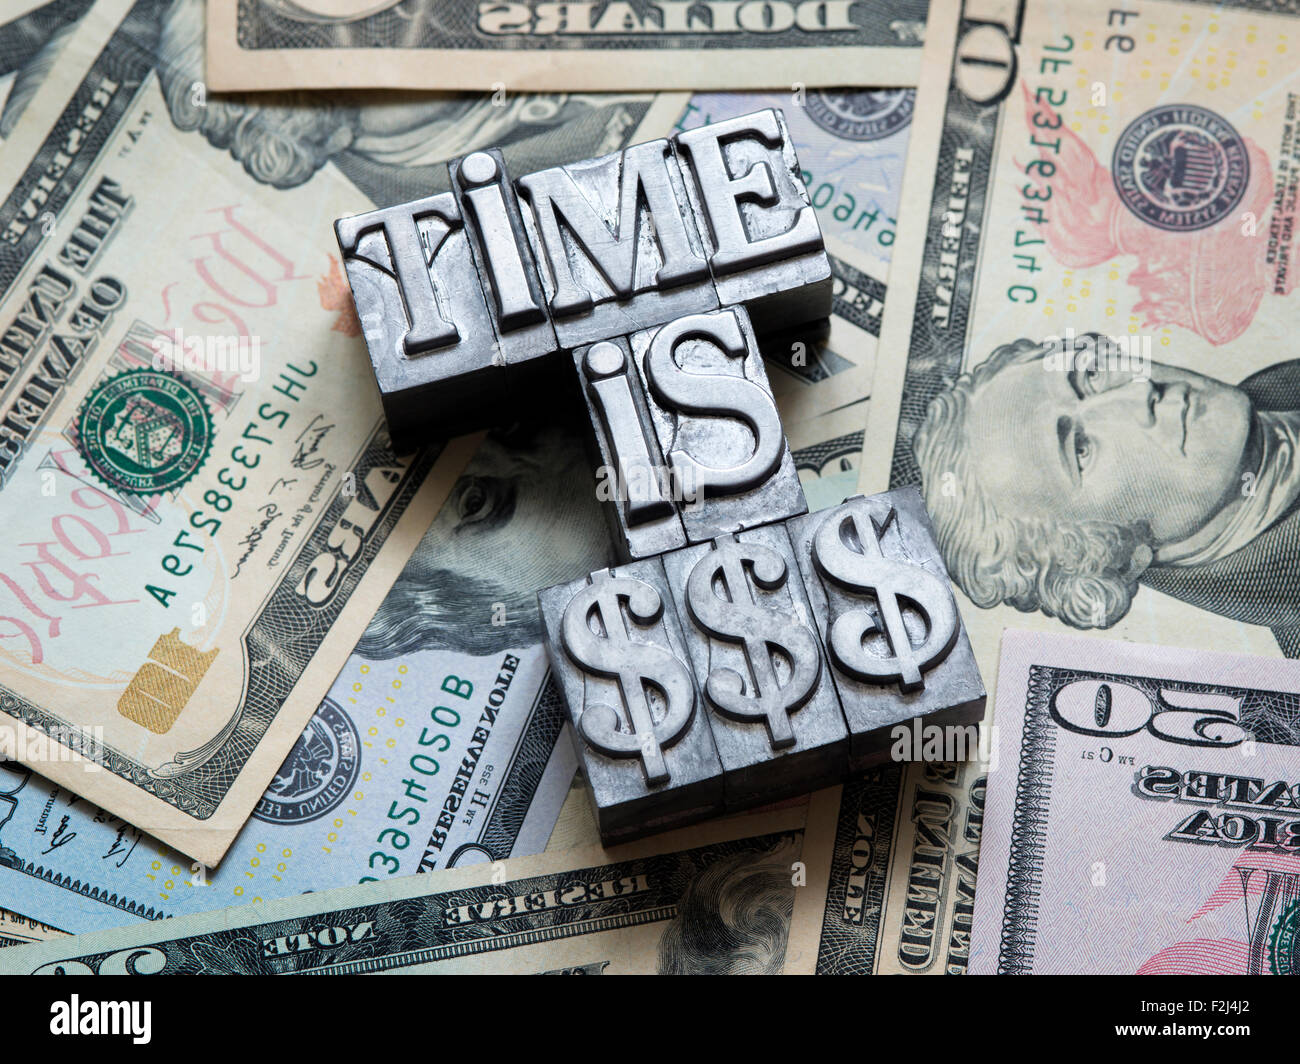 Time is money concept faits de type typographique métallique sur tas de dollars US Photo Stock